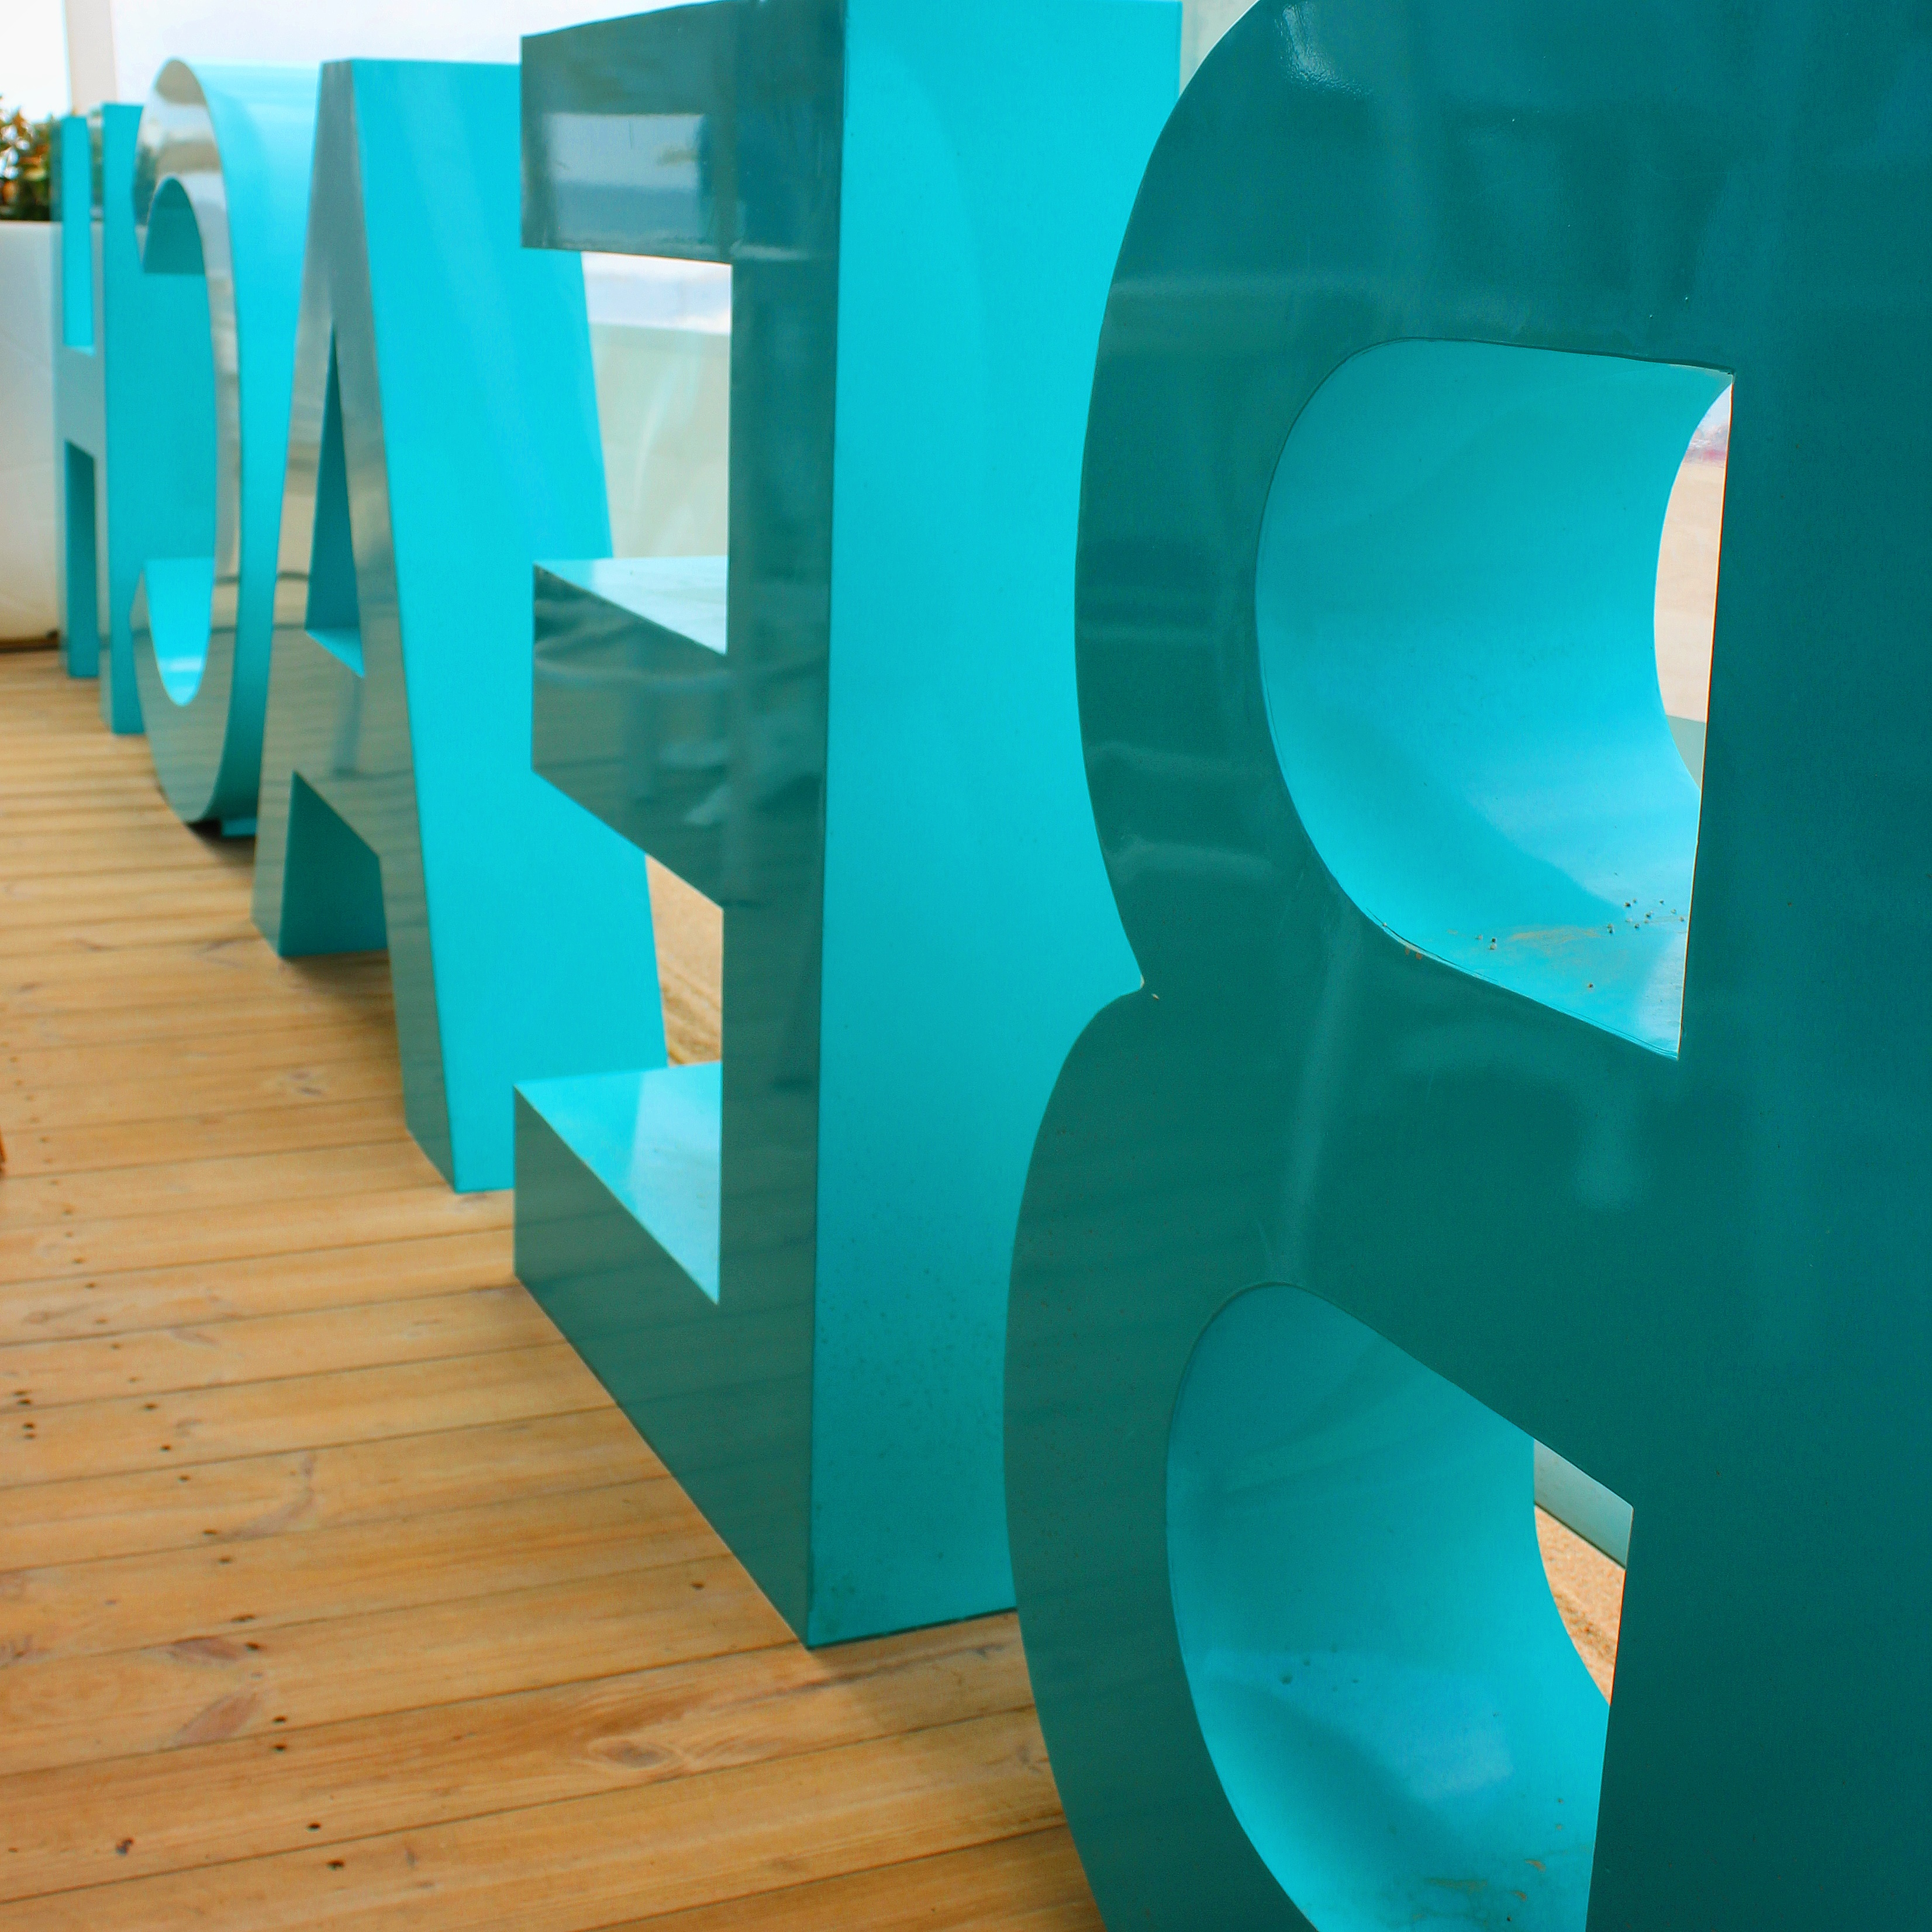 Reverse view of the big turquoise letters spelling beach at Nui Beach Club near Calella. My photo tour of Costa Barcelona